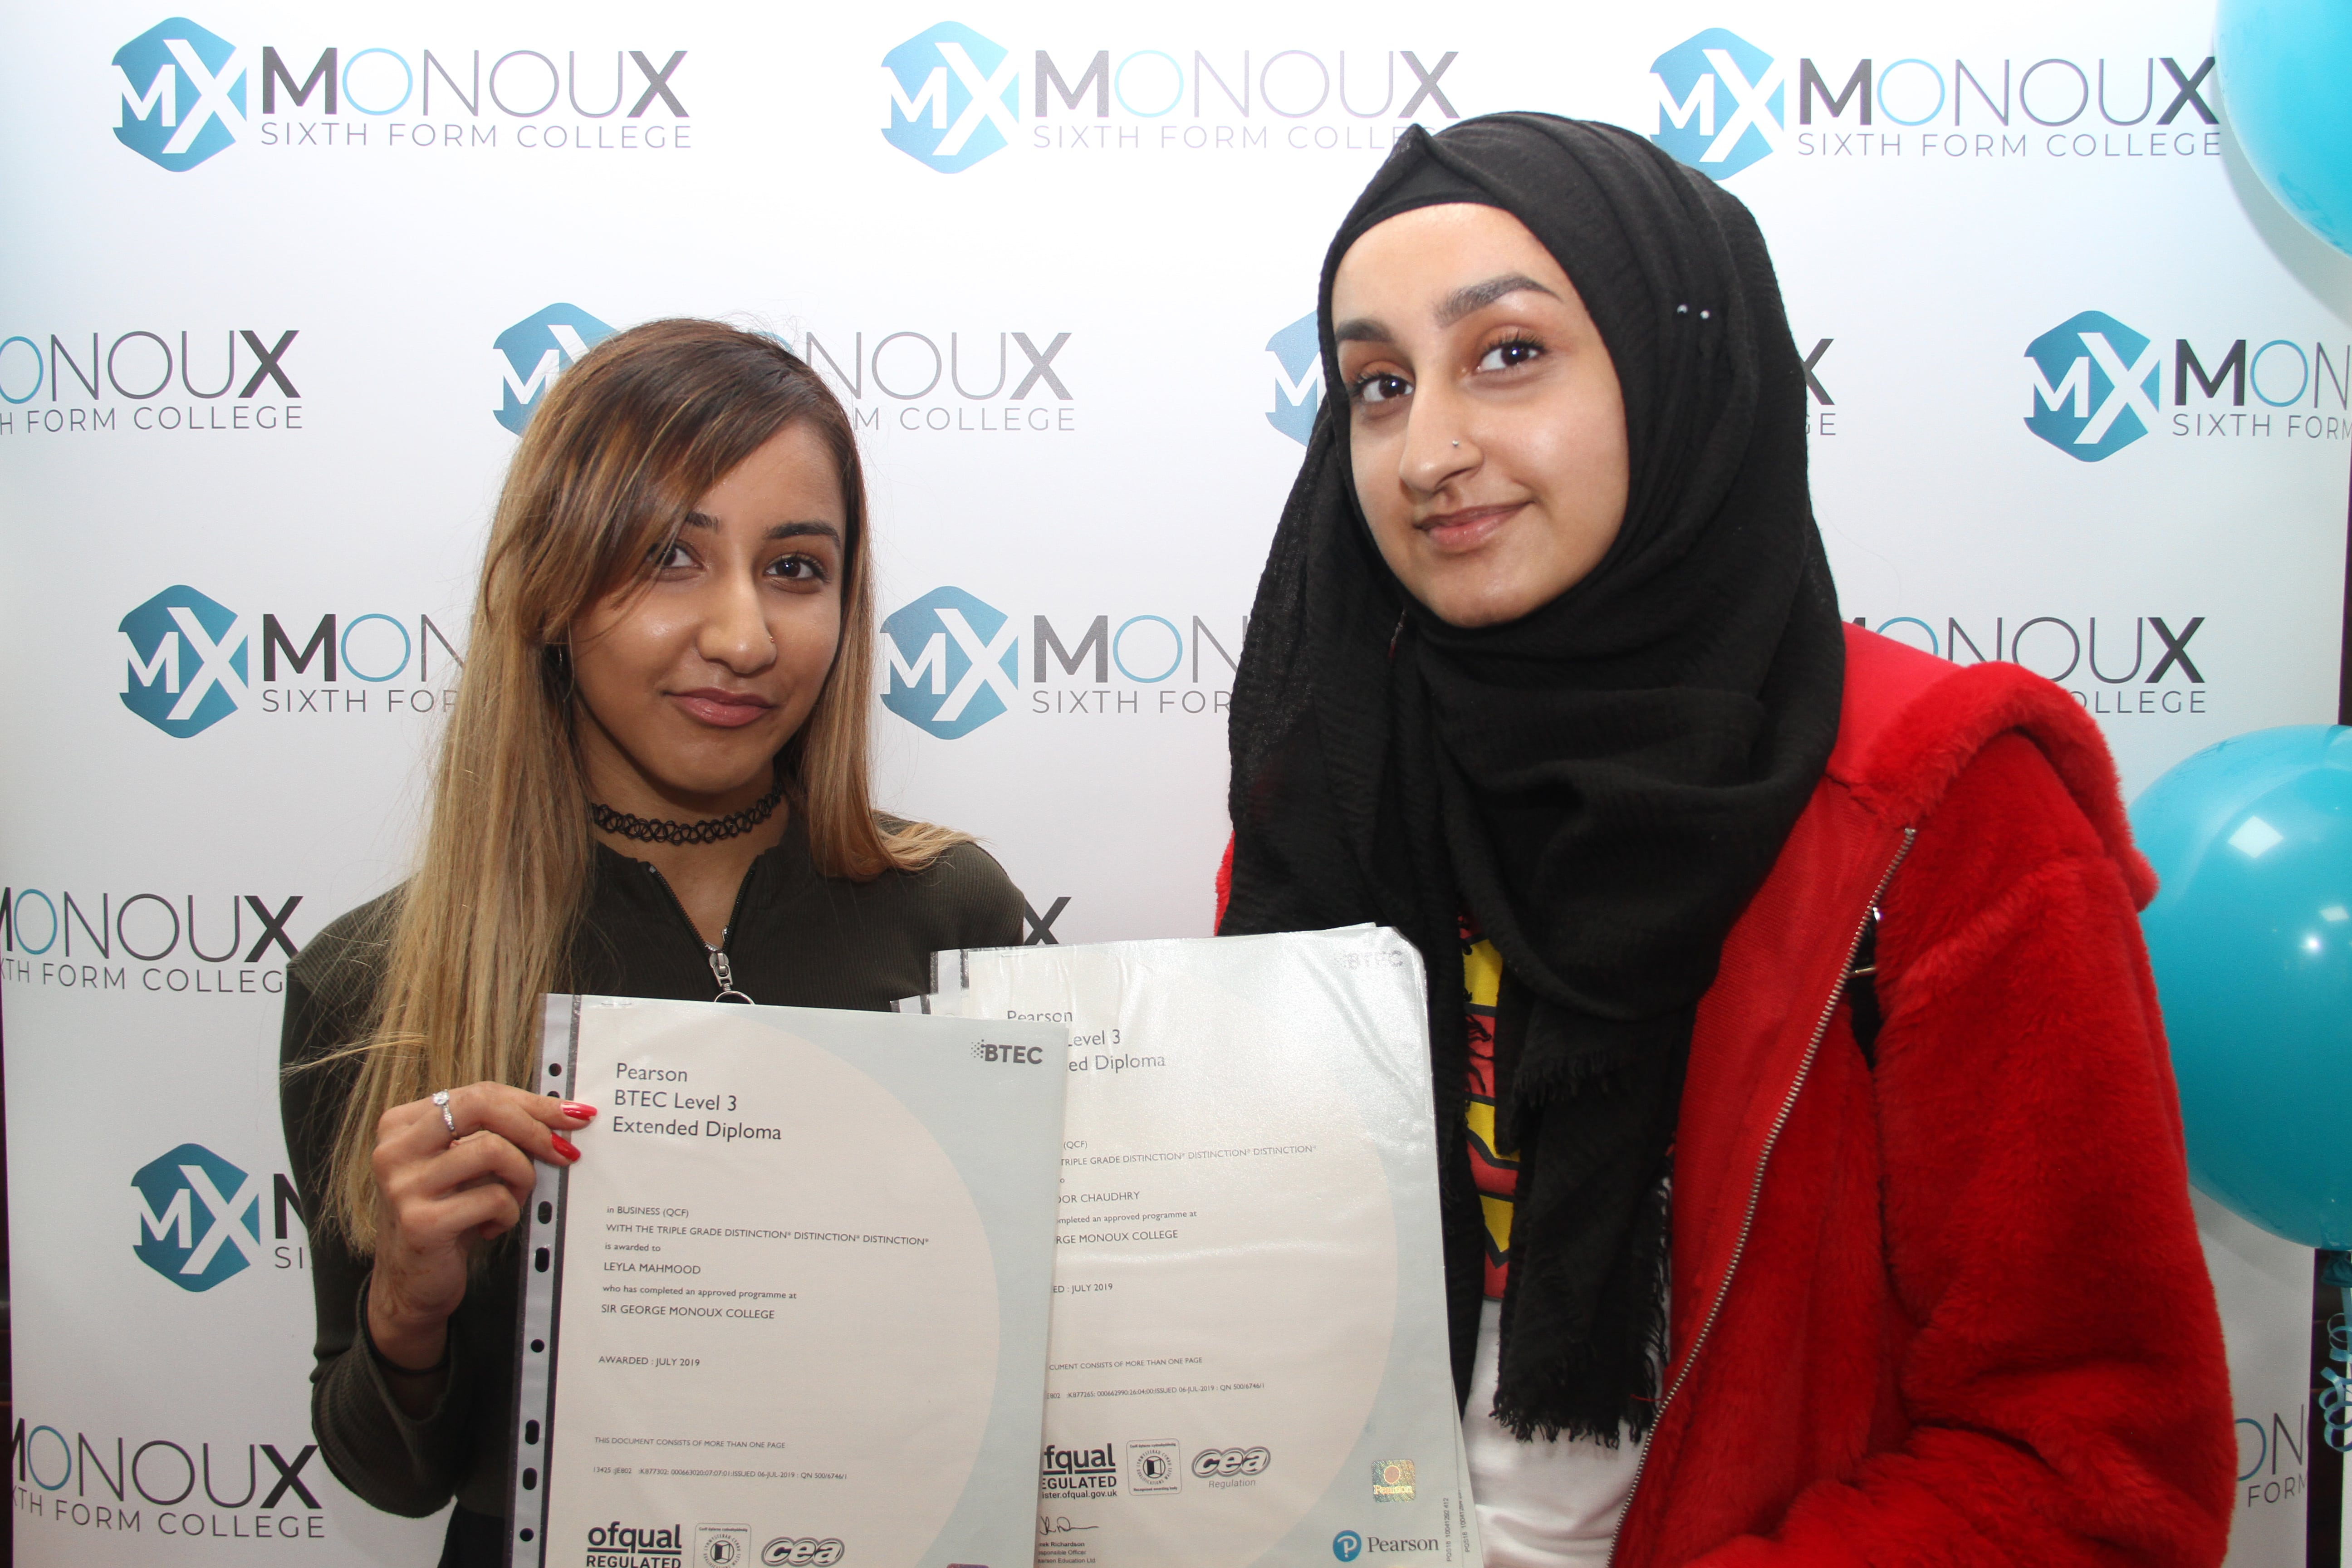 Great results at Monoux – now in top 10% of sixth forms nationally.